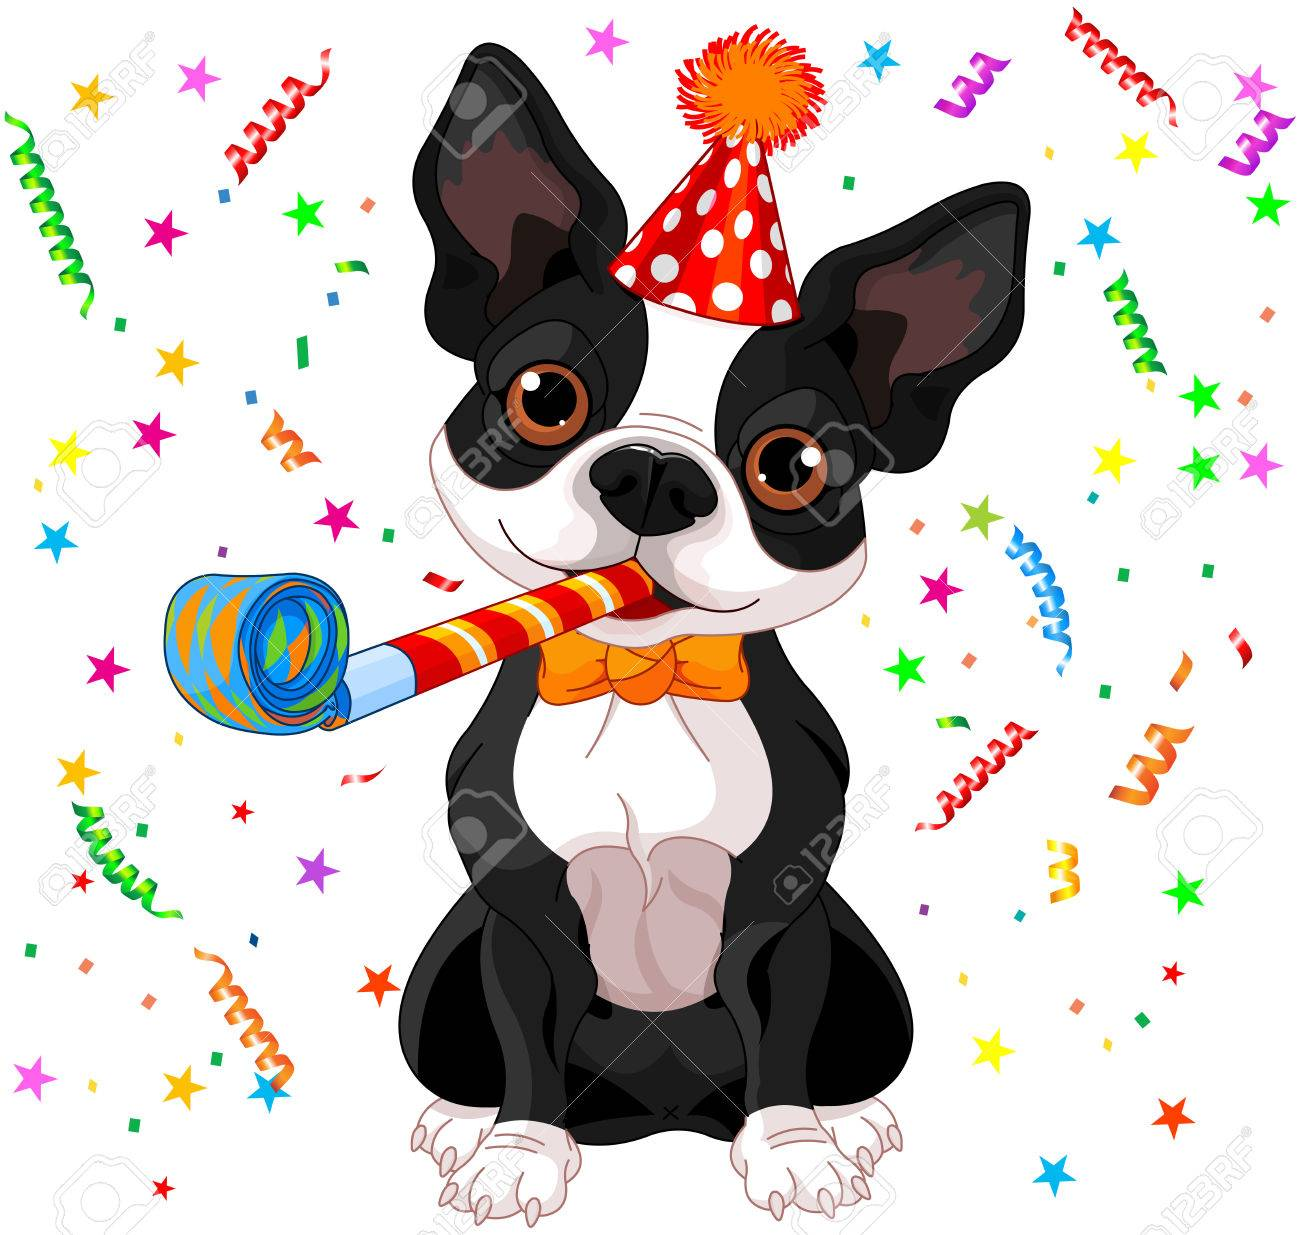 Ethogramm of the dog - A. CAPRA et D. ROBOTTI 35588778-illustration-of-cute-boston-terrier-celebrating